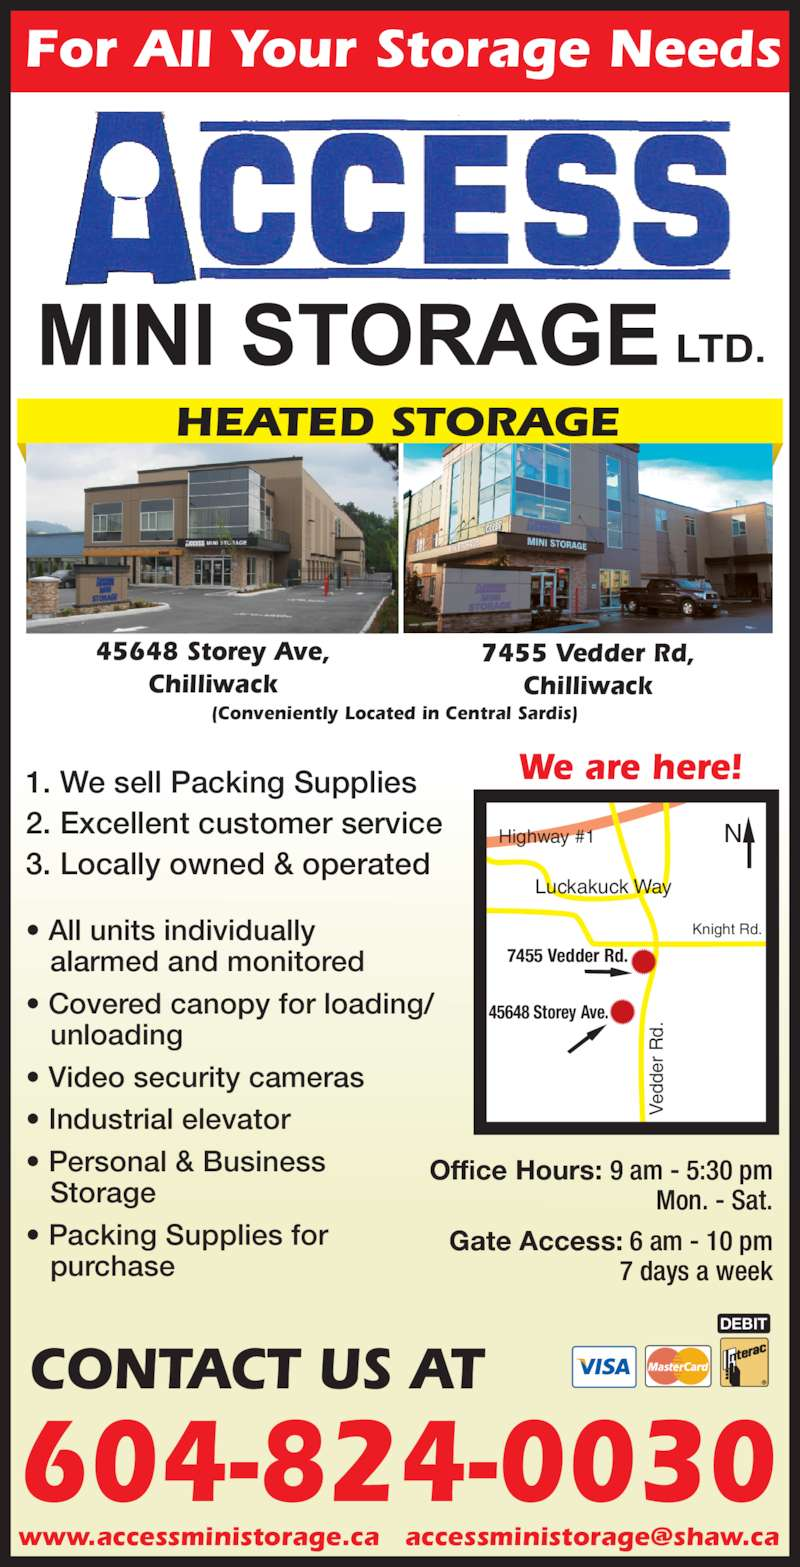 Access Mini-Storage Ltd (604-824-0030) - Display Ad - alarmed and monitored 3. Locally owned & operated ? All units individually ? Covered canopy for loading/    unloading ? Video security cameras ? Industrial elevator ? Personal & Business    Storage 45648 Storey Ave, Chilliwack Office Hours: 9 am - 5:30 pm Mon. - Sat. Gate Access: 6 am - 10 pm 7 days a week ? Packing Supplies for    purchase Knight Rd. Luckakuck Way Highway #1 45648 Storey Ave. Ve dd er  R d. 7455 Vedder Rd. 7455 Vedder Rd, Chilliwack We are here! For All Your Storage Needs (Conveniently Located in Central Sardis) HEATED STORAGE 2. Excellent customer service DEBIT 604-824-0030 CONTACT US AT 1. We sell Packing Supplies